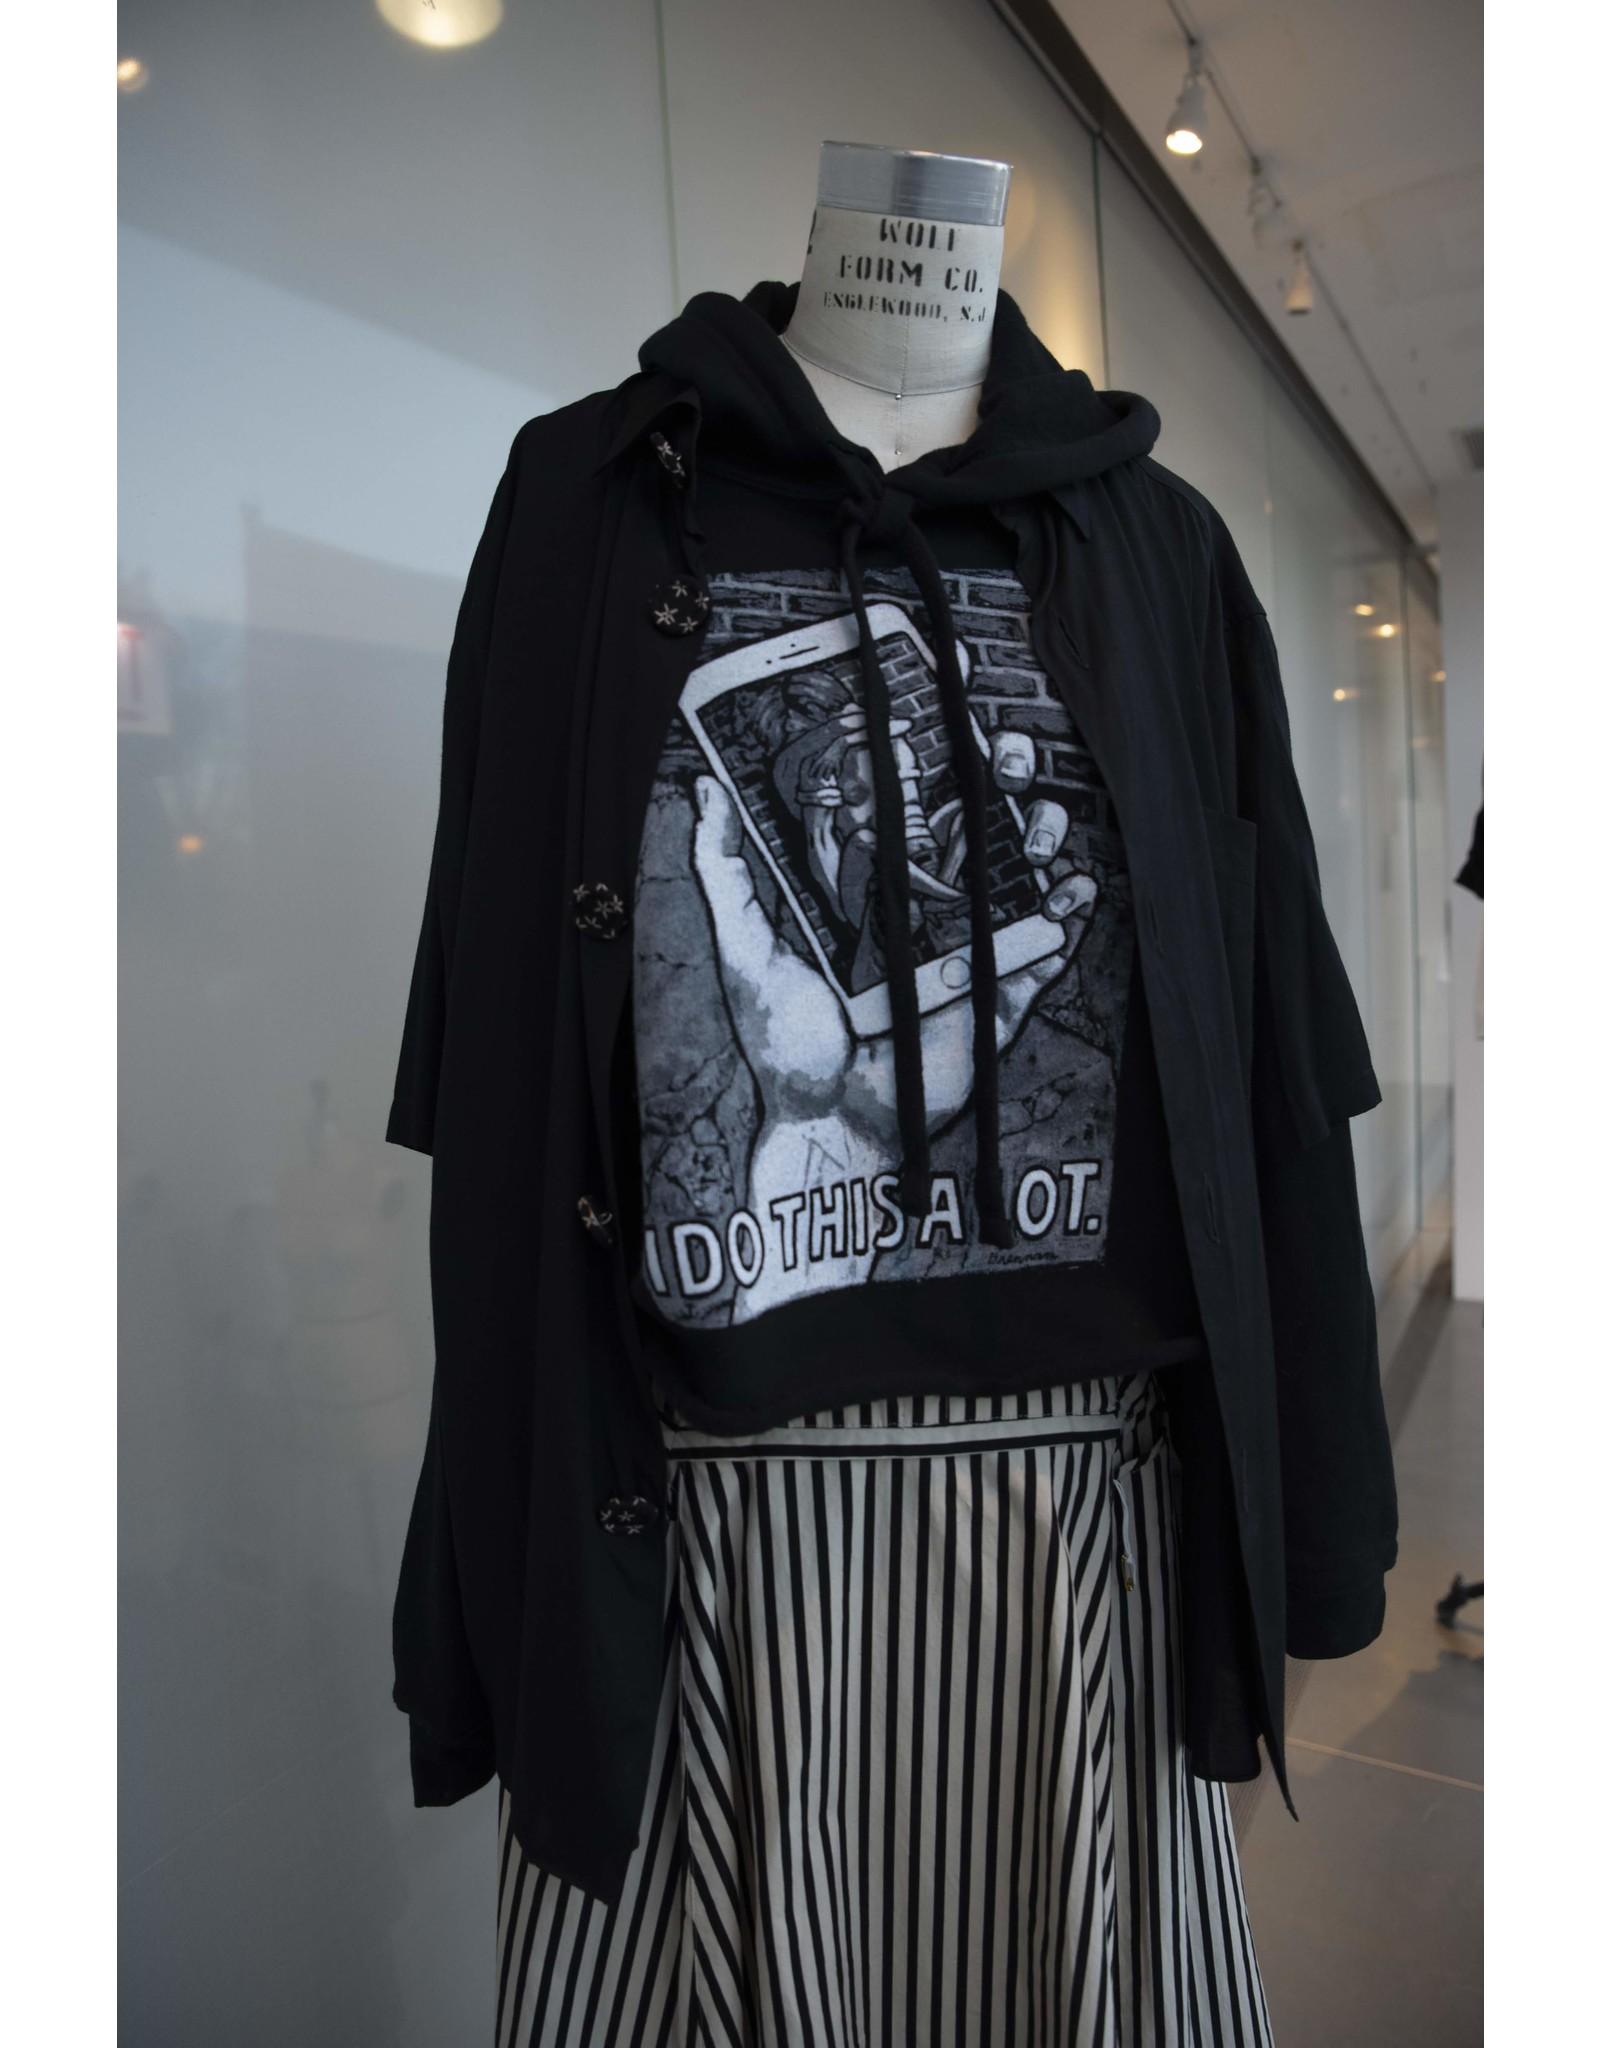 Cropped hooded sweatshirt, Fashion Underground